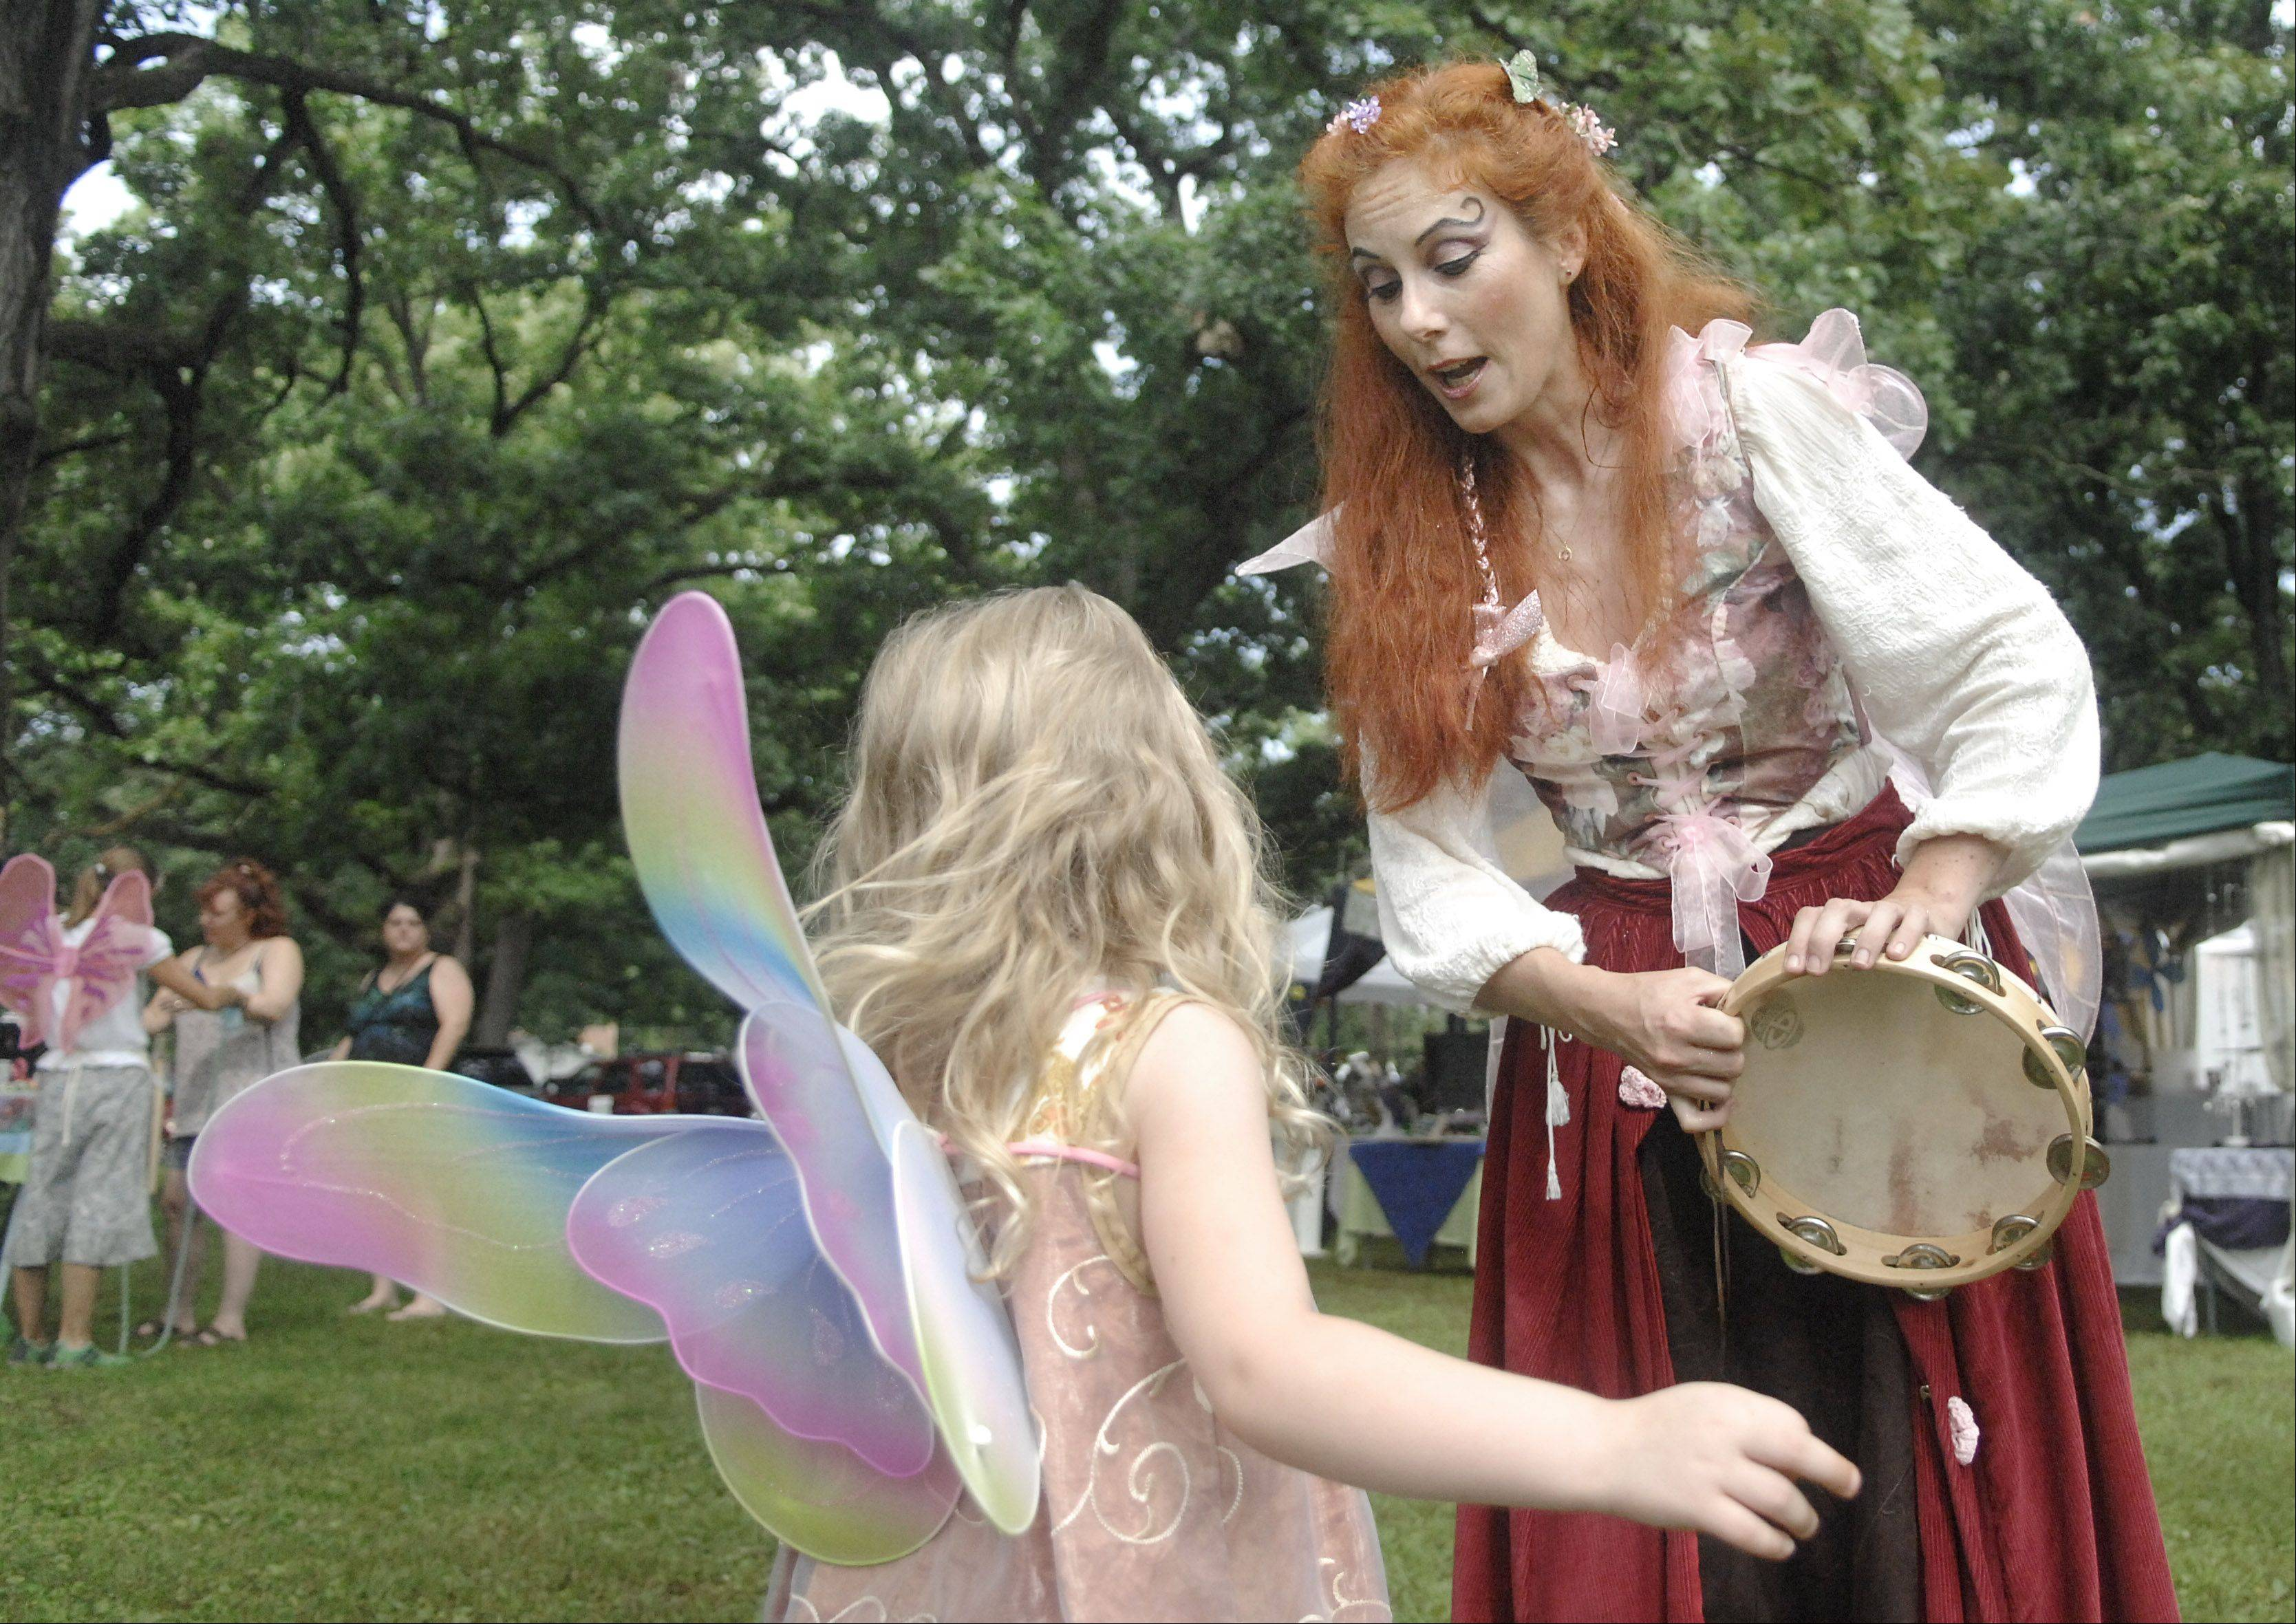 The Ruby Ruse Fairy, played by Amy Christensen of Chicago, sings to Elora Jaecks, 4, of Naperville after having tea with a fairy queen at last year's World of Faeries Festival at Vasa Park in South Elgin.